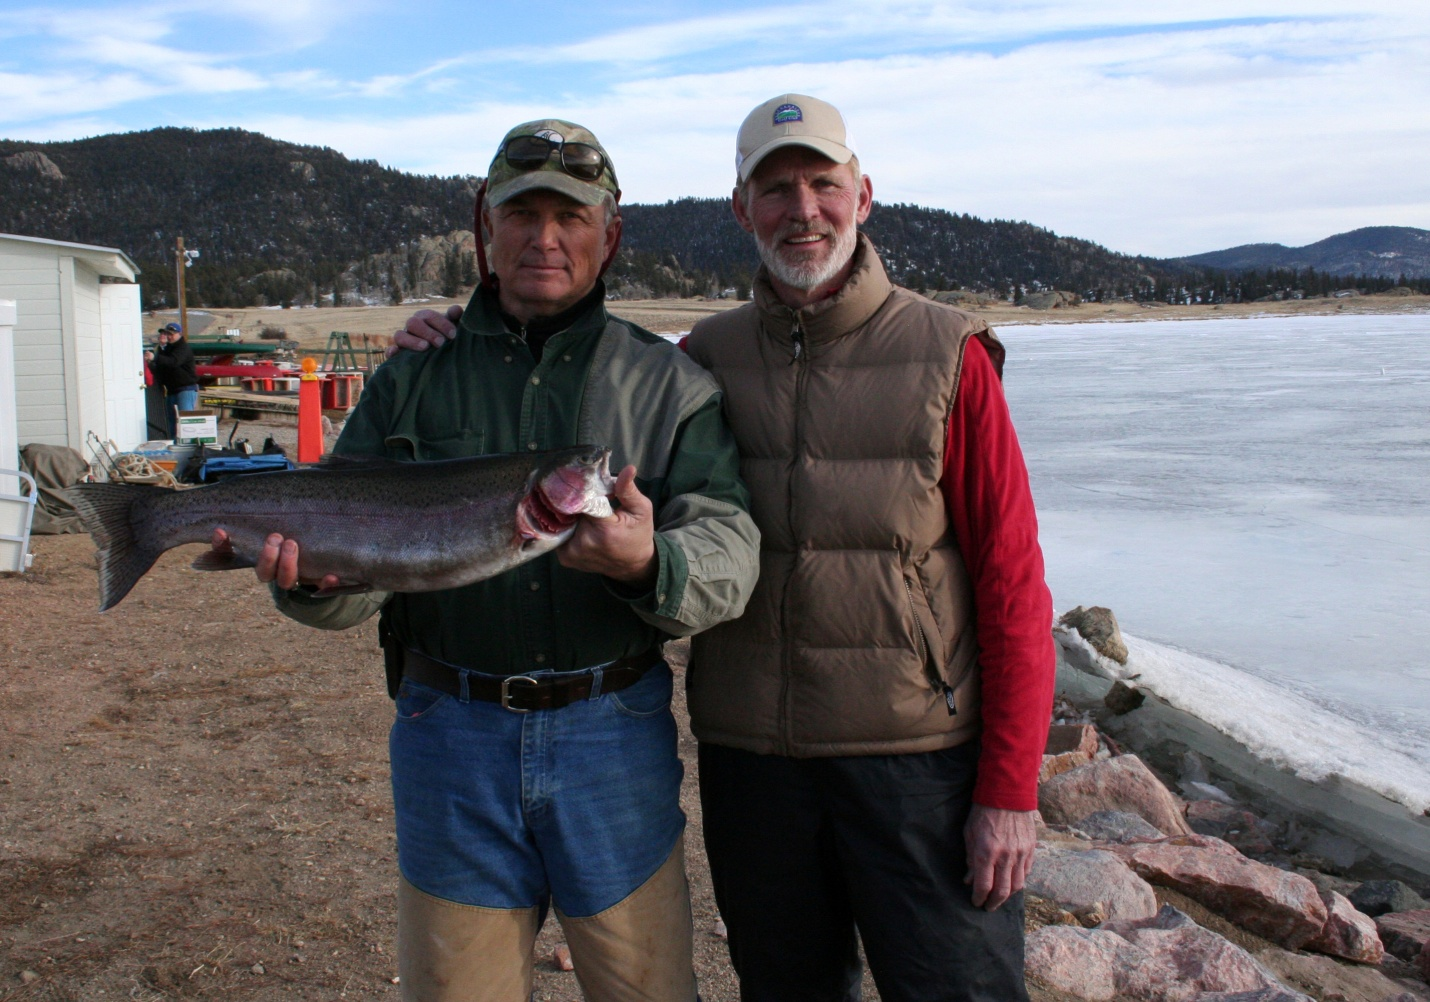 Eleven mile state park in colorado to host ice fishing for Ice fishing tournament